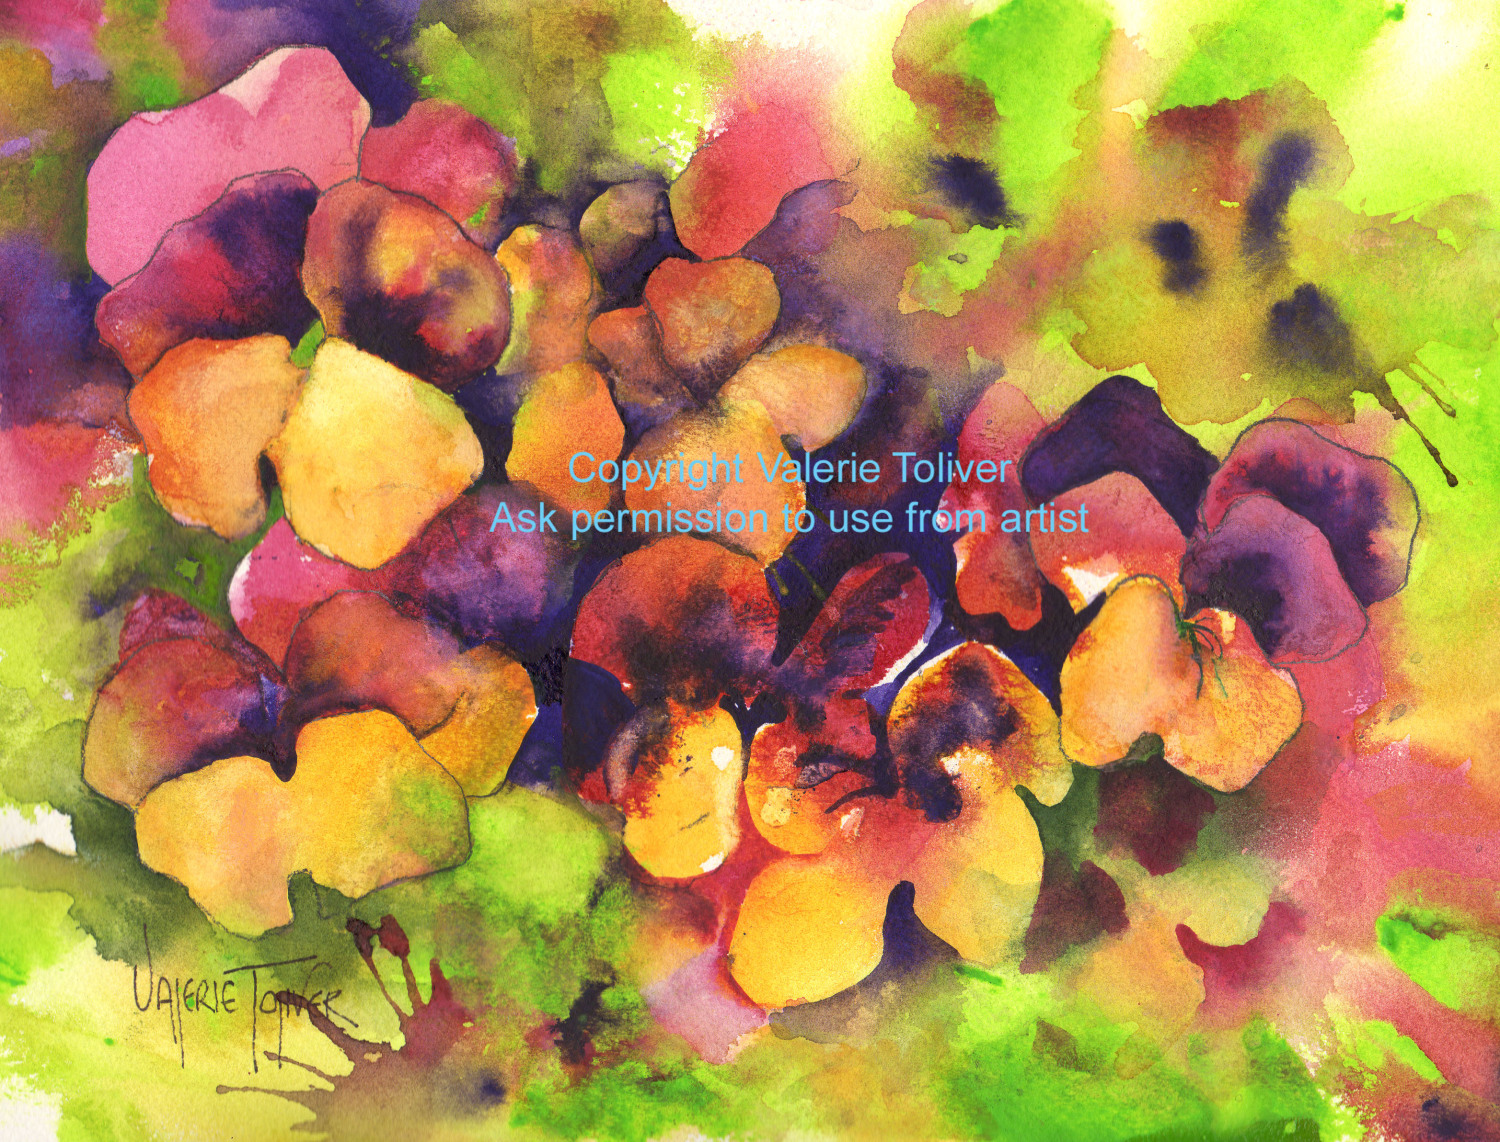 ABSTRACT WATERCOLOR OF PANSIES